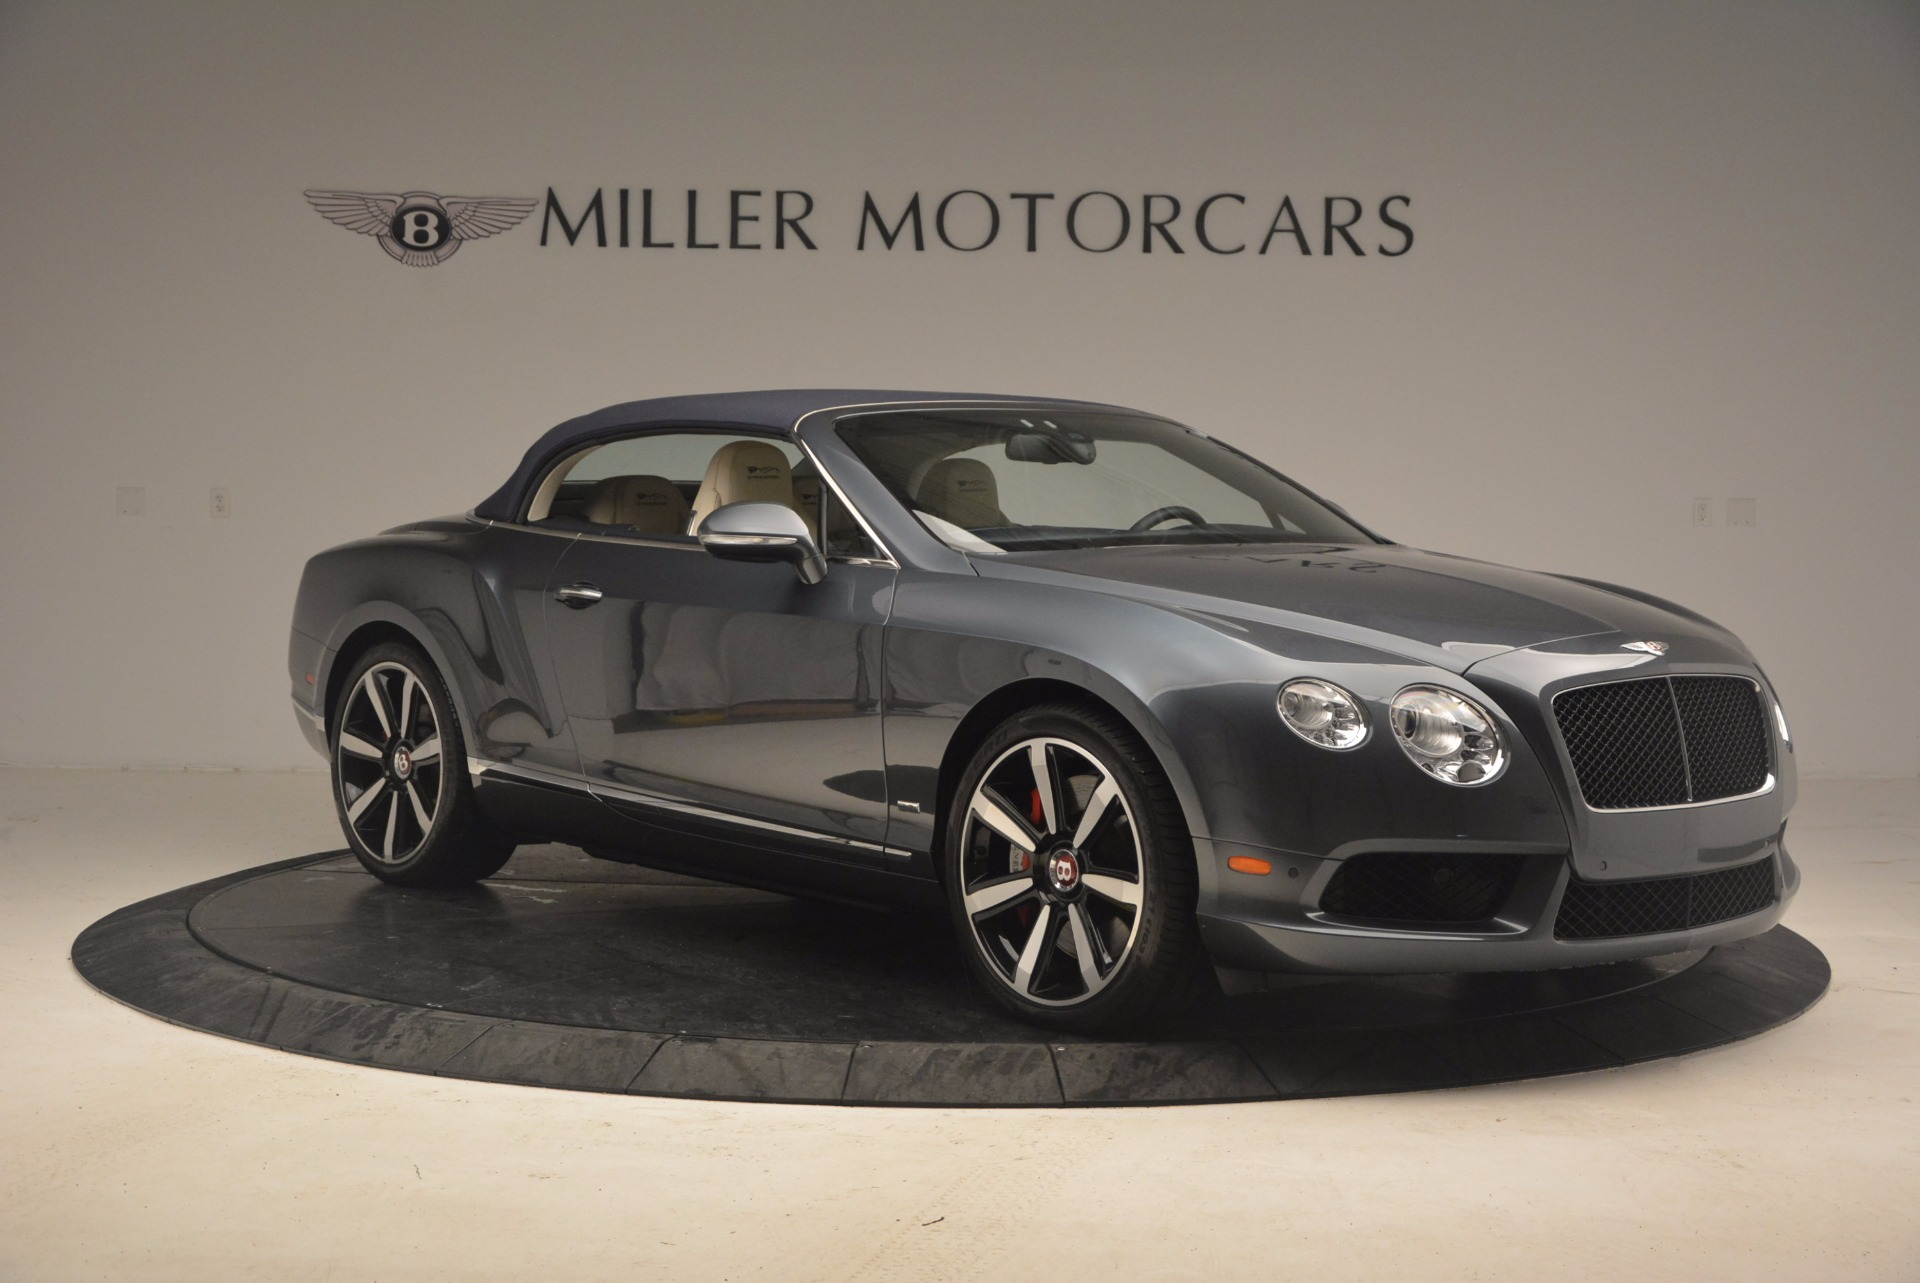 Used 2013 Bentley Continental GT V8 Le Mans Edition, 1 of 48 For Sale In Greenwich, CT 1288_p23